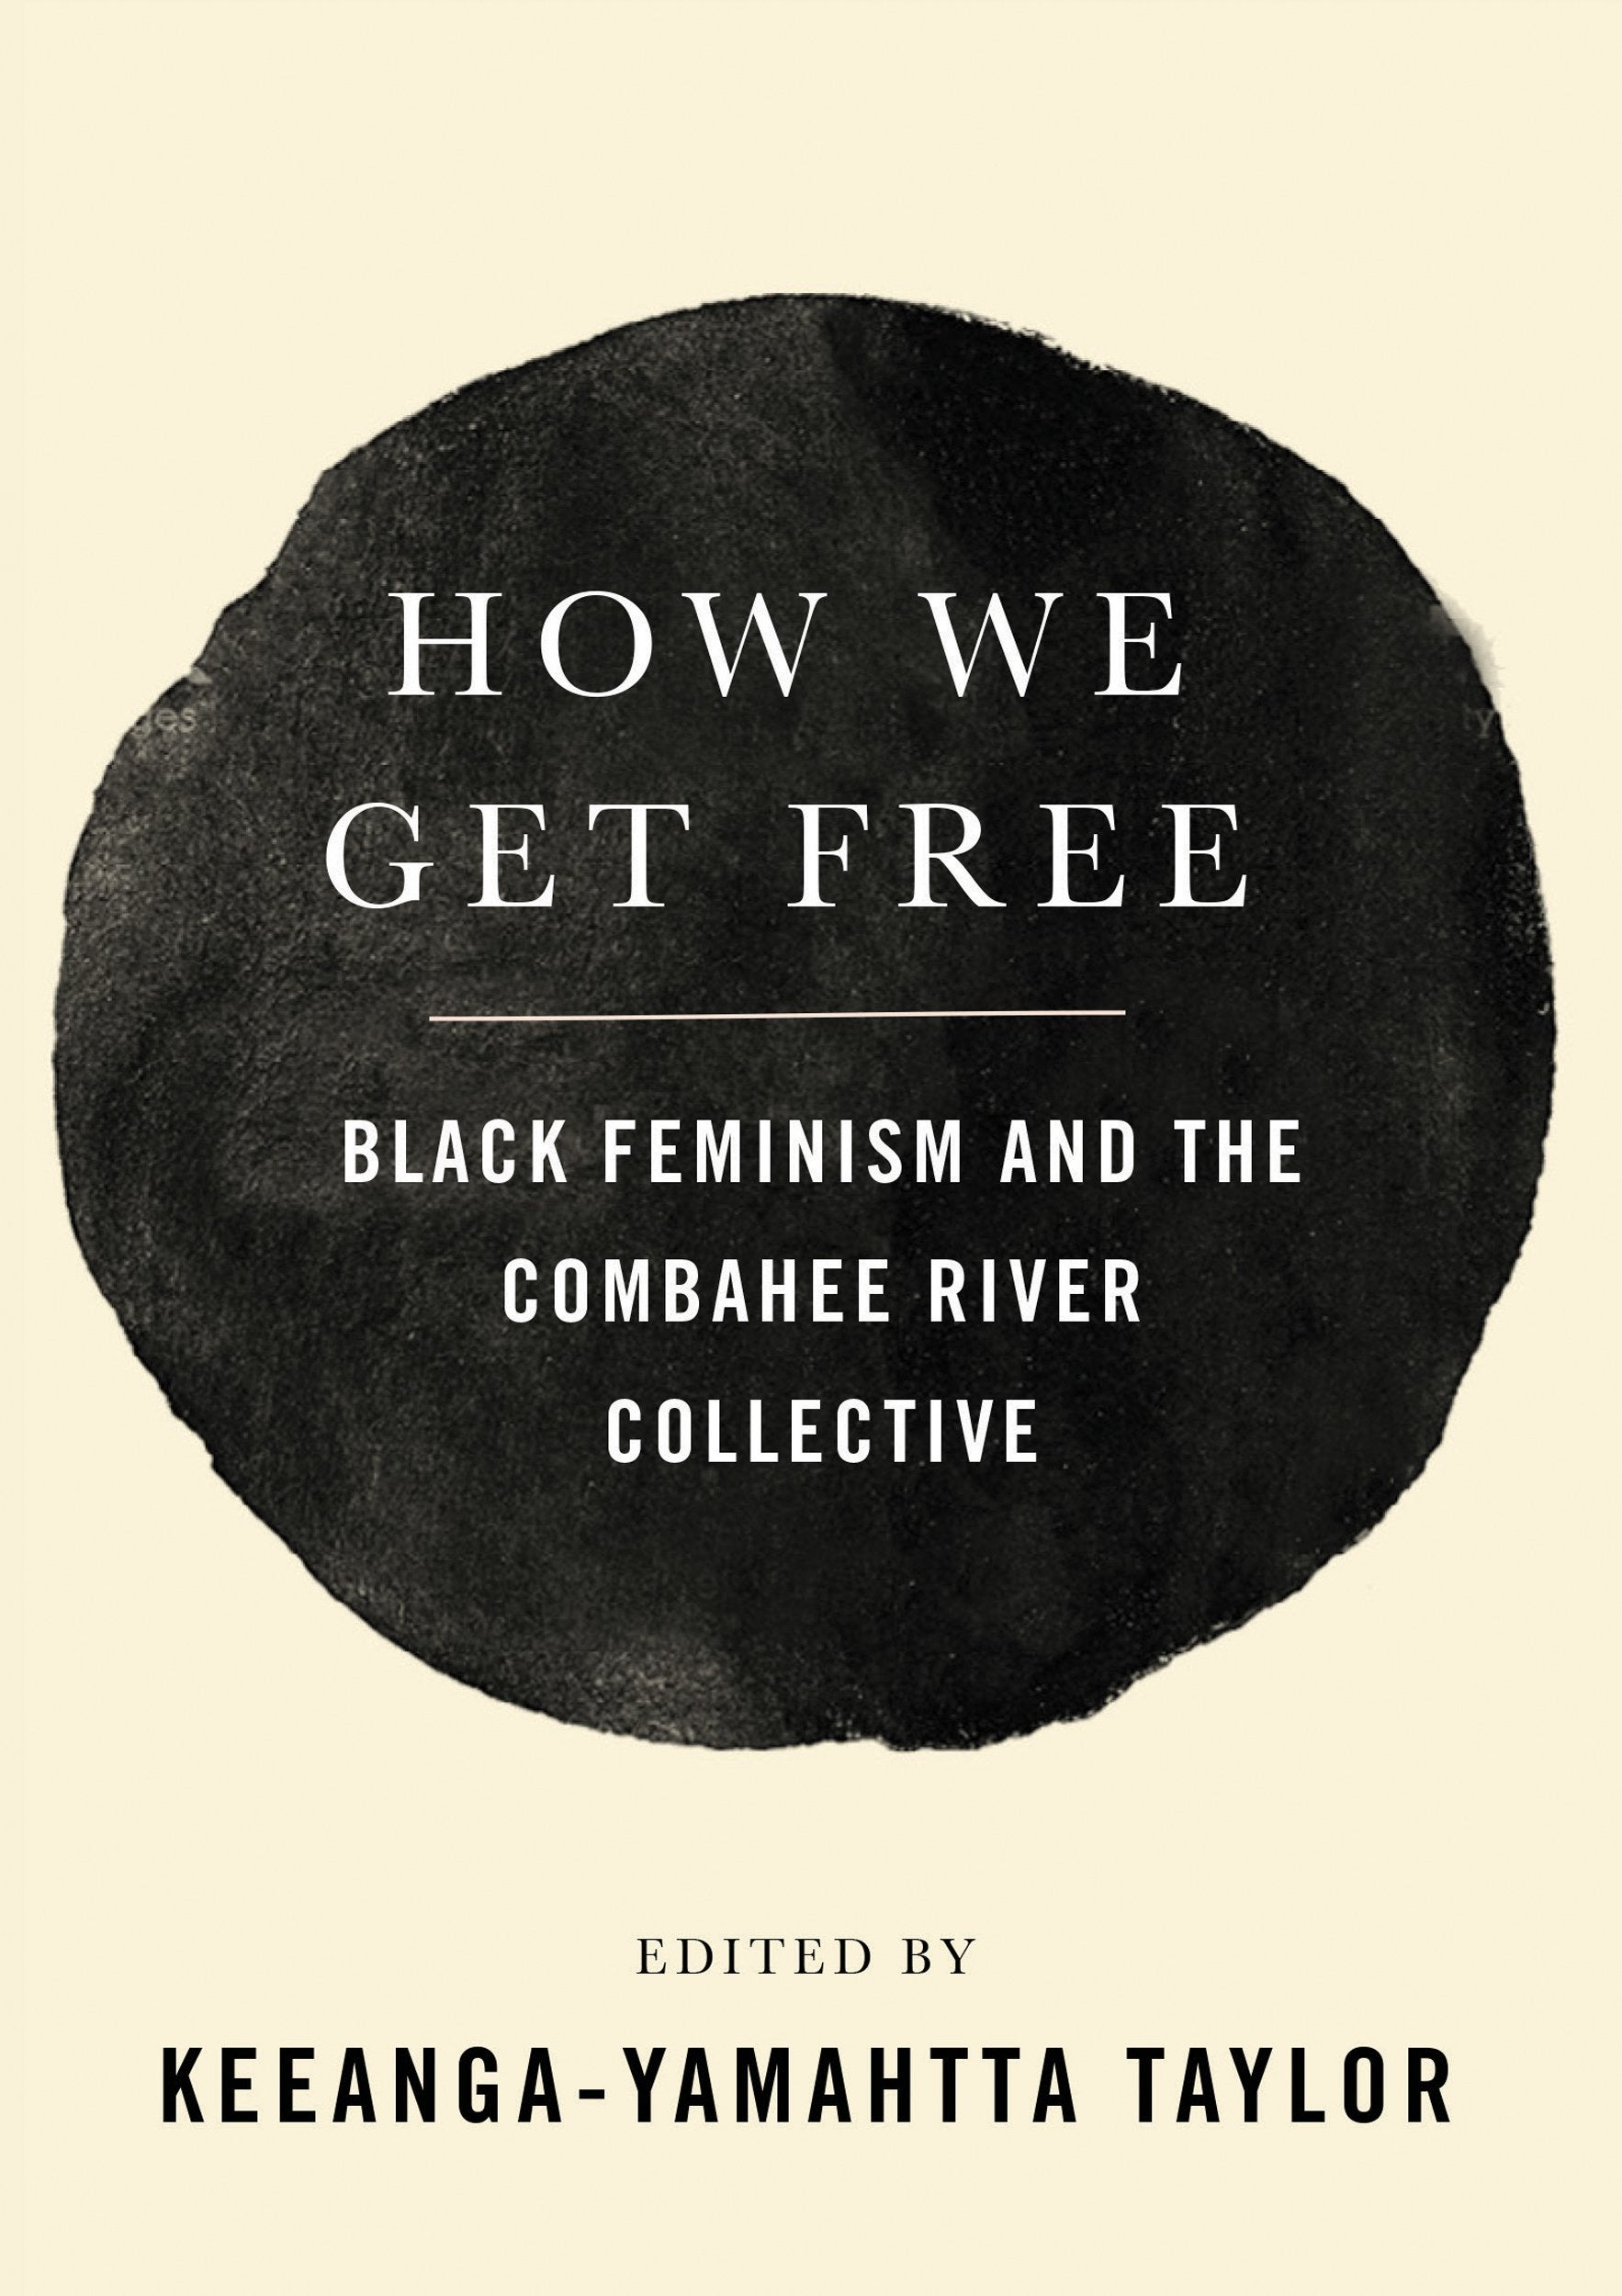 How We Get Free- Black Feminism and the Combahee River Collective